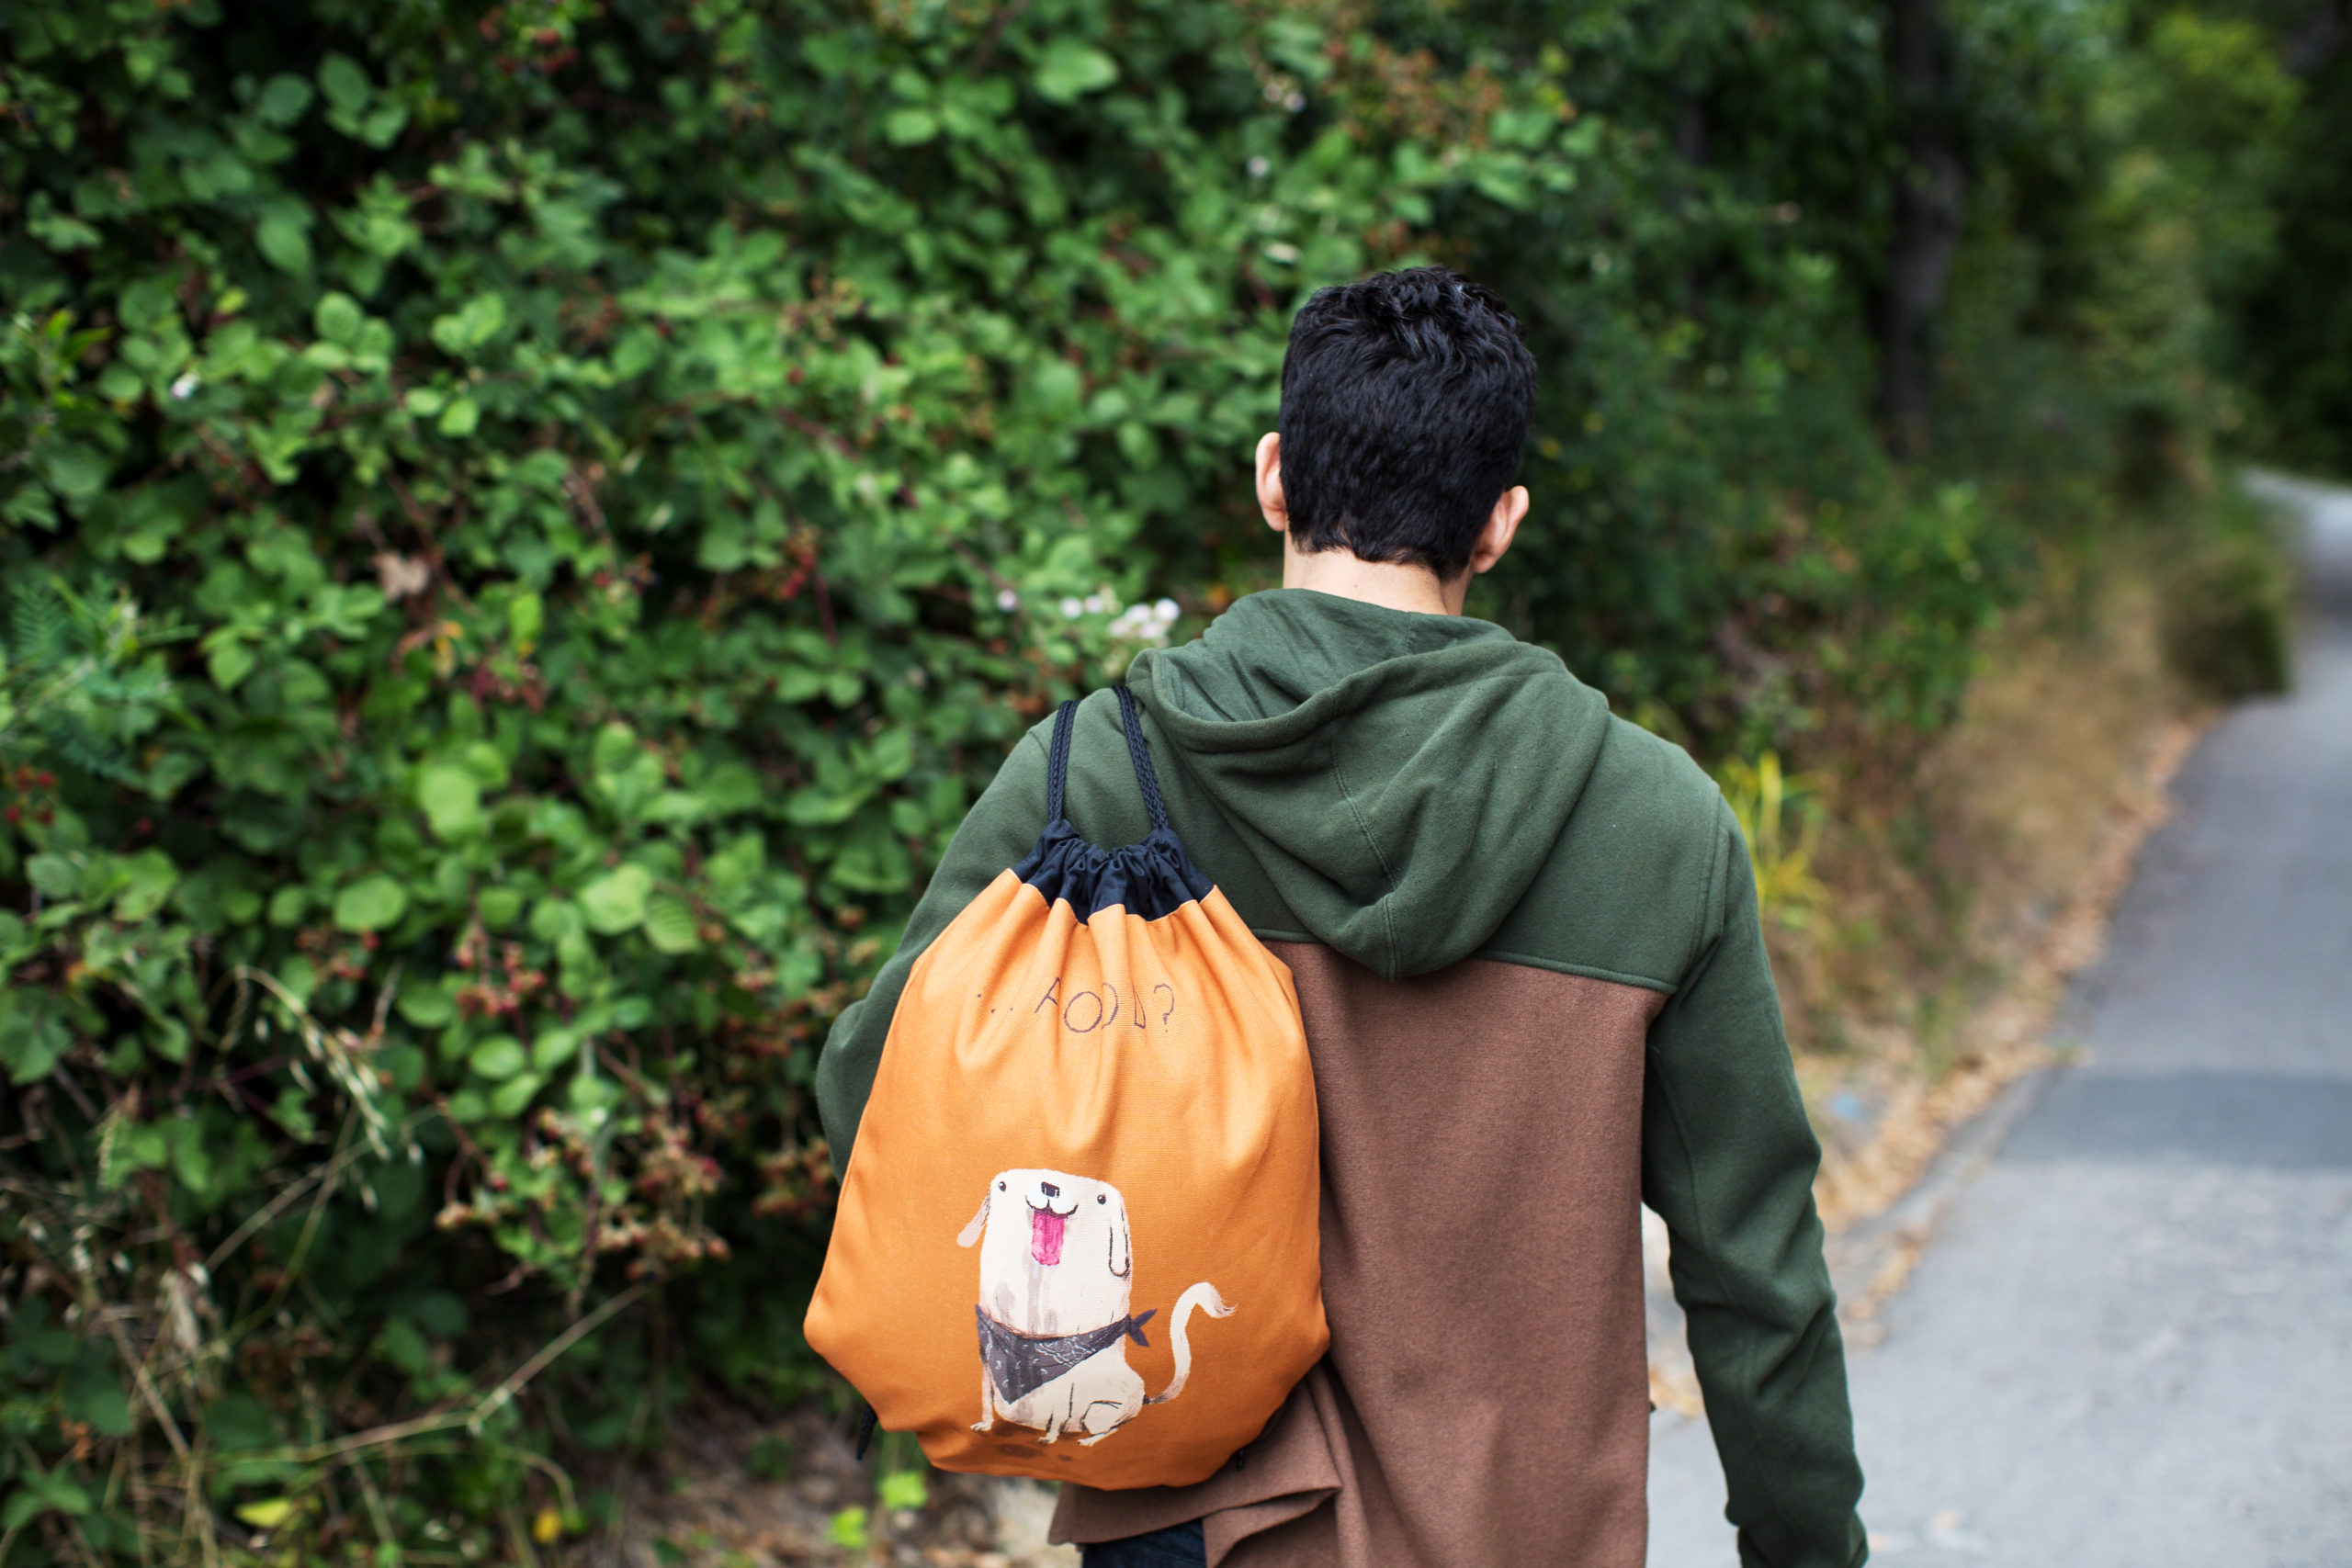 Photo of Guy with a drawstring bag